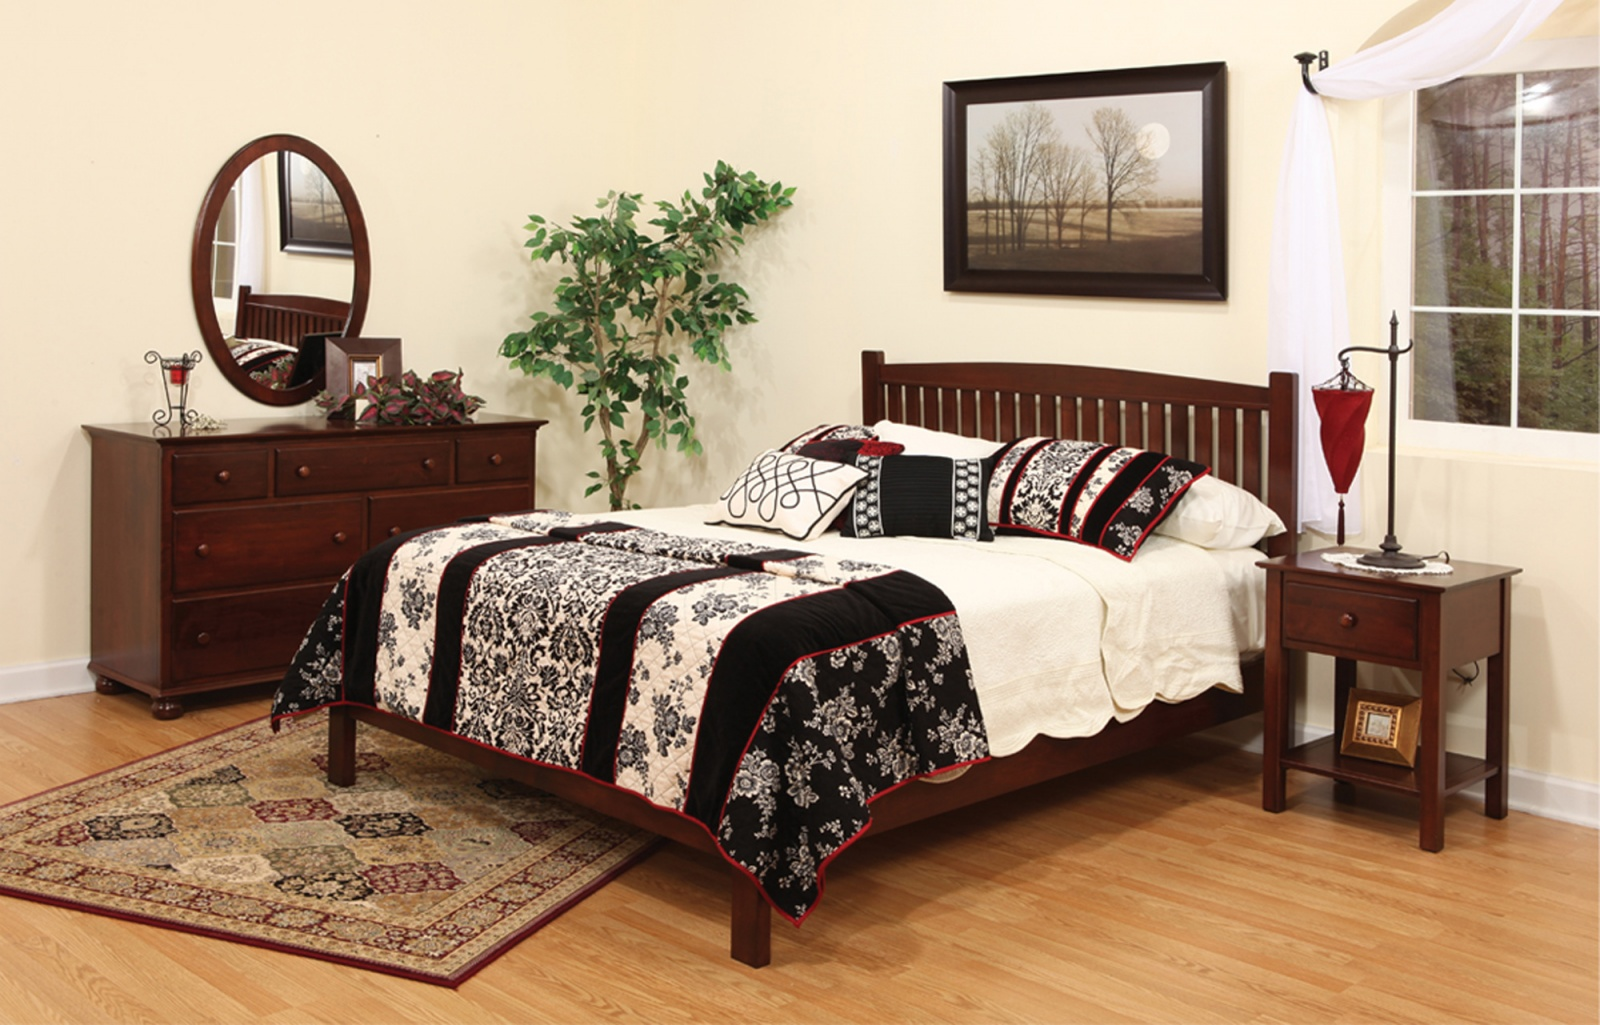 Luellen Setting with Sleepwell Bed